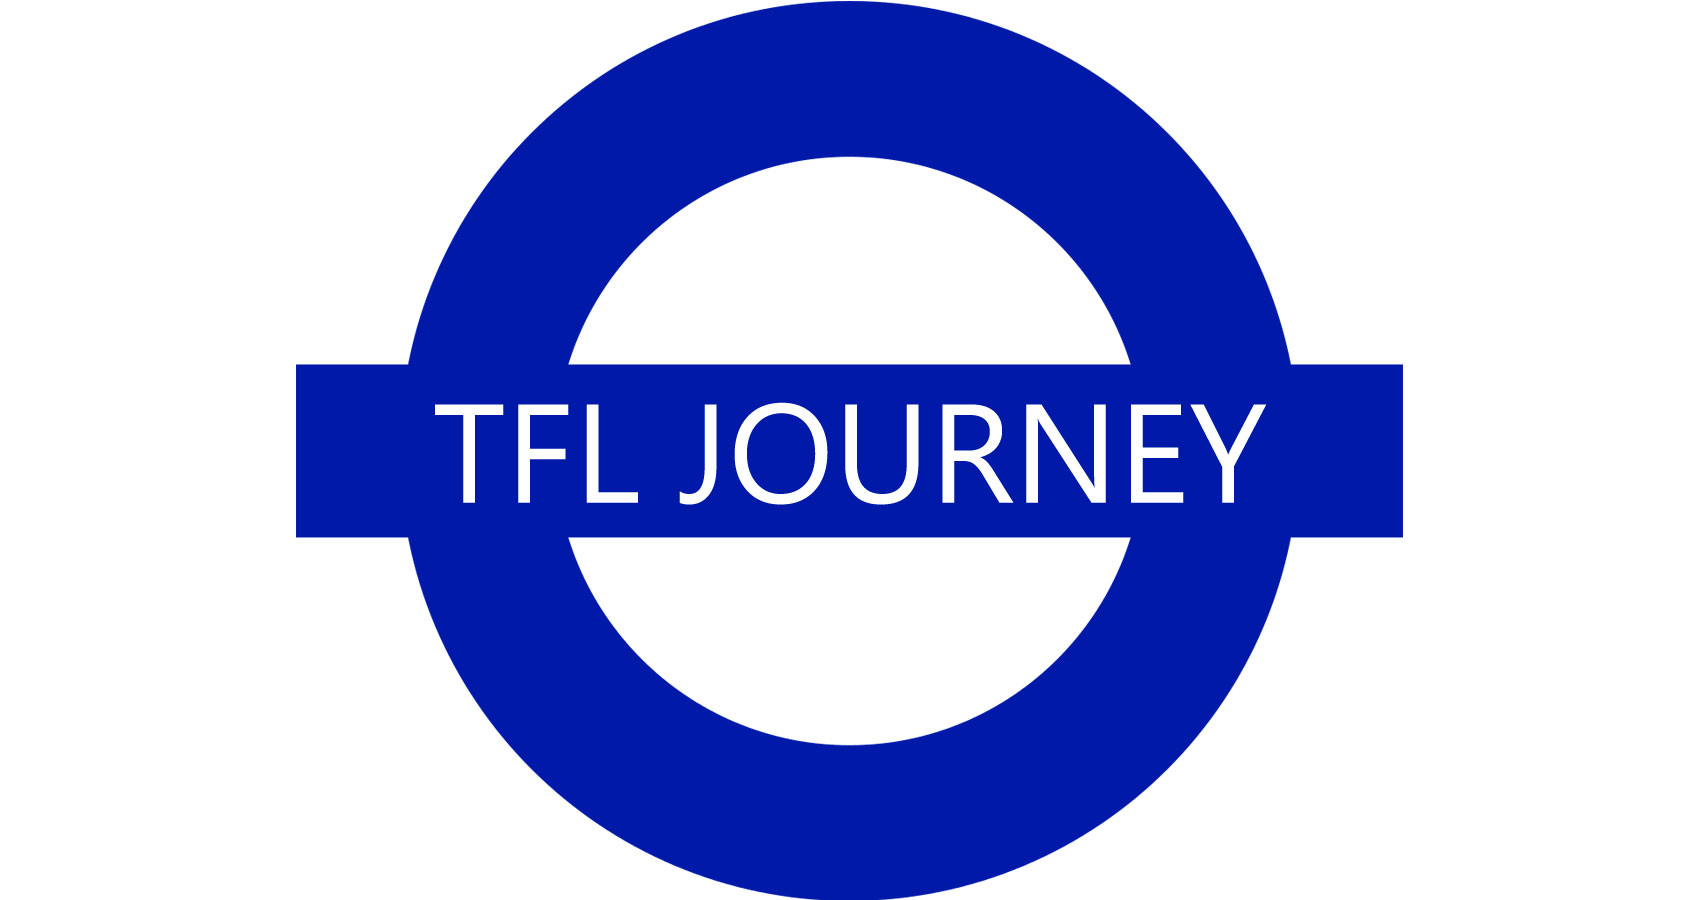 TFL Journey by Naima Mohamud Elmi at Spillwords.com